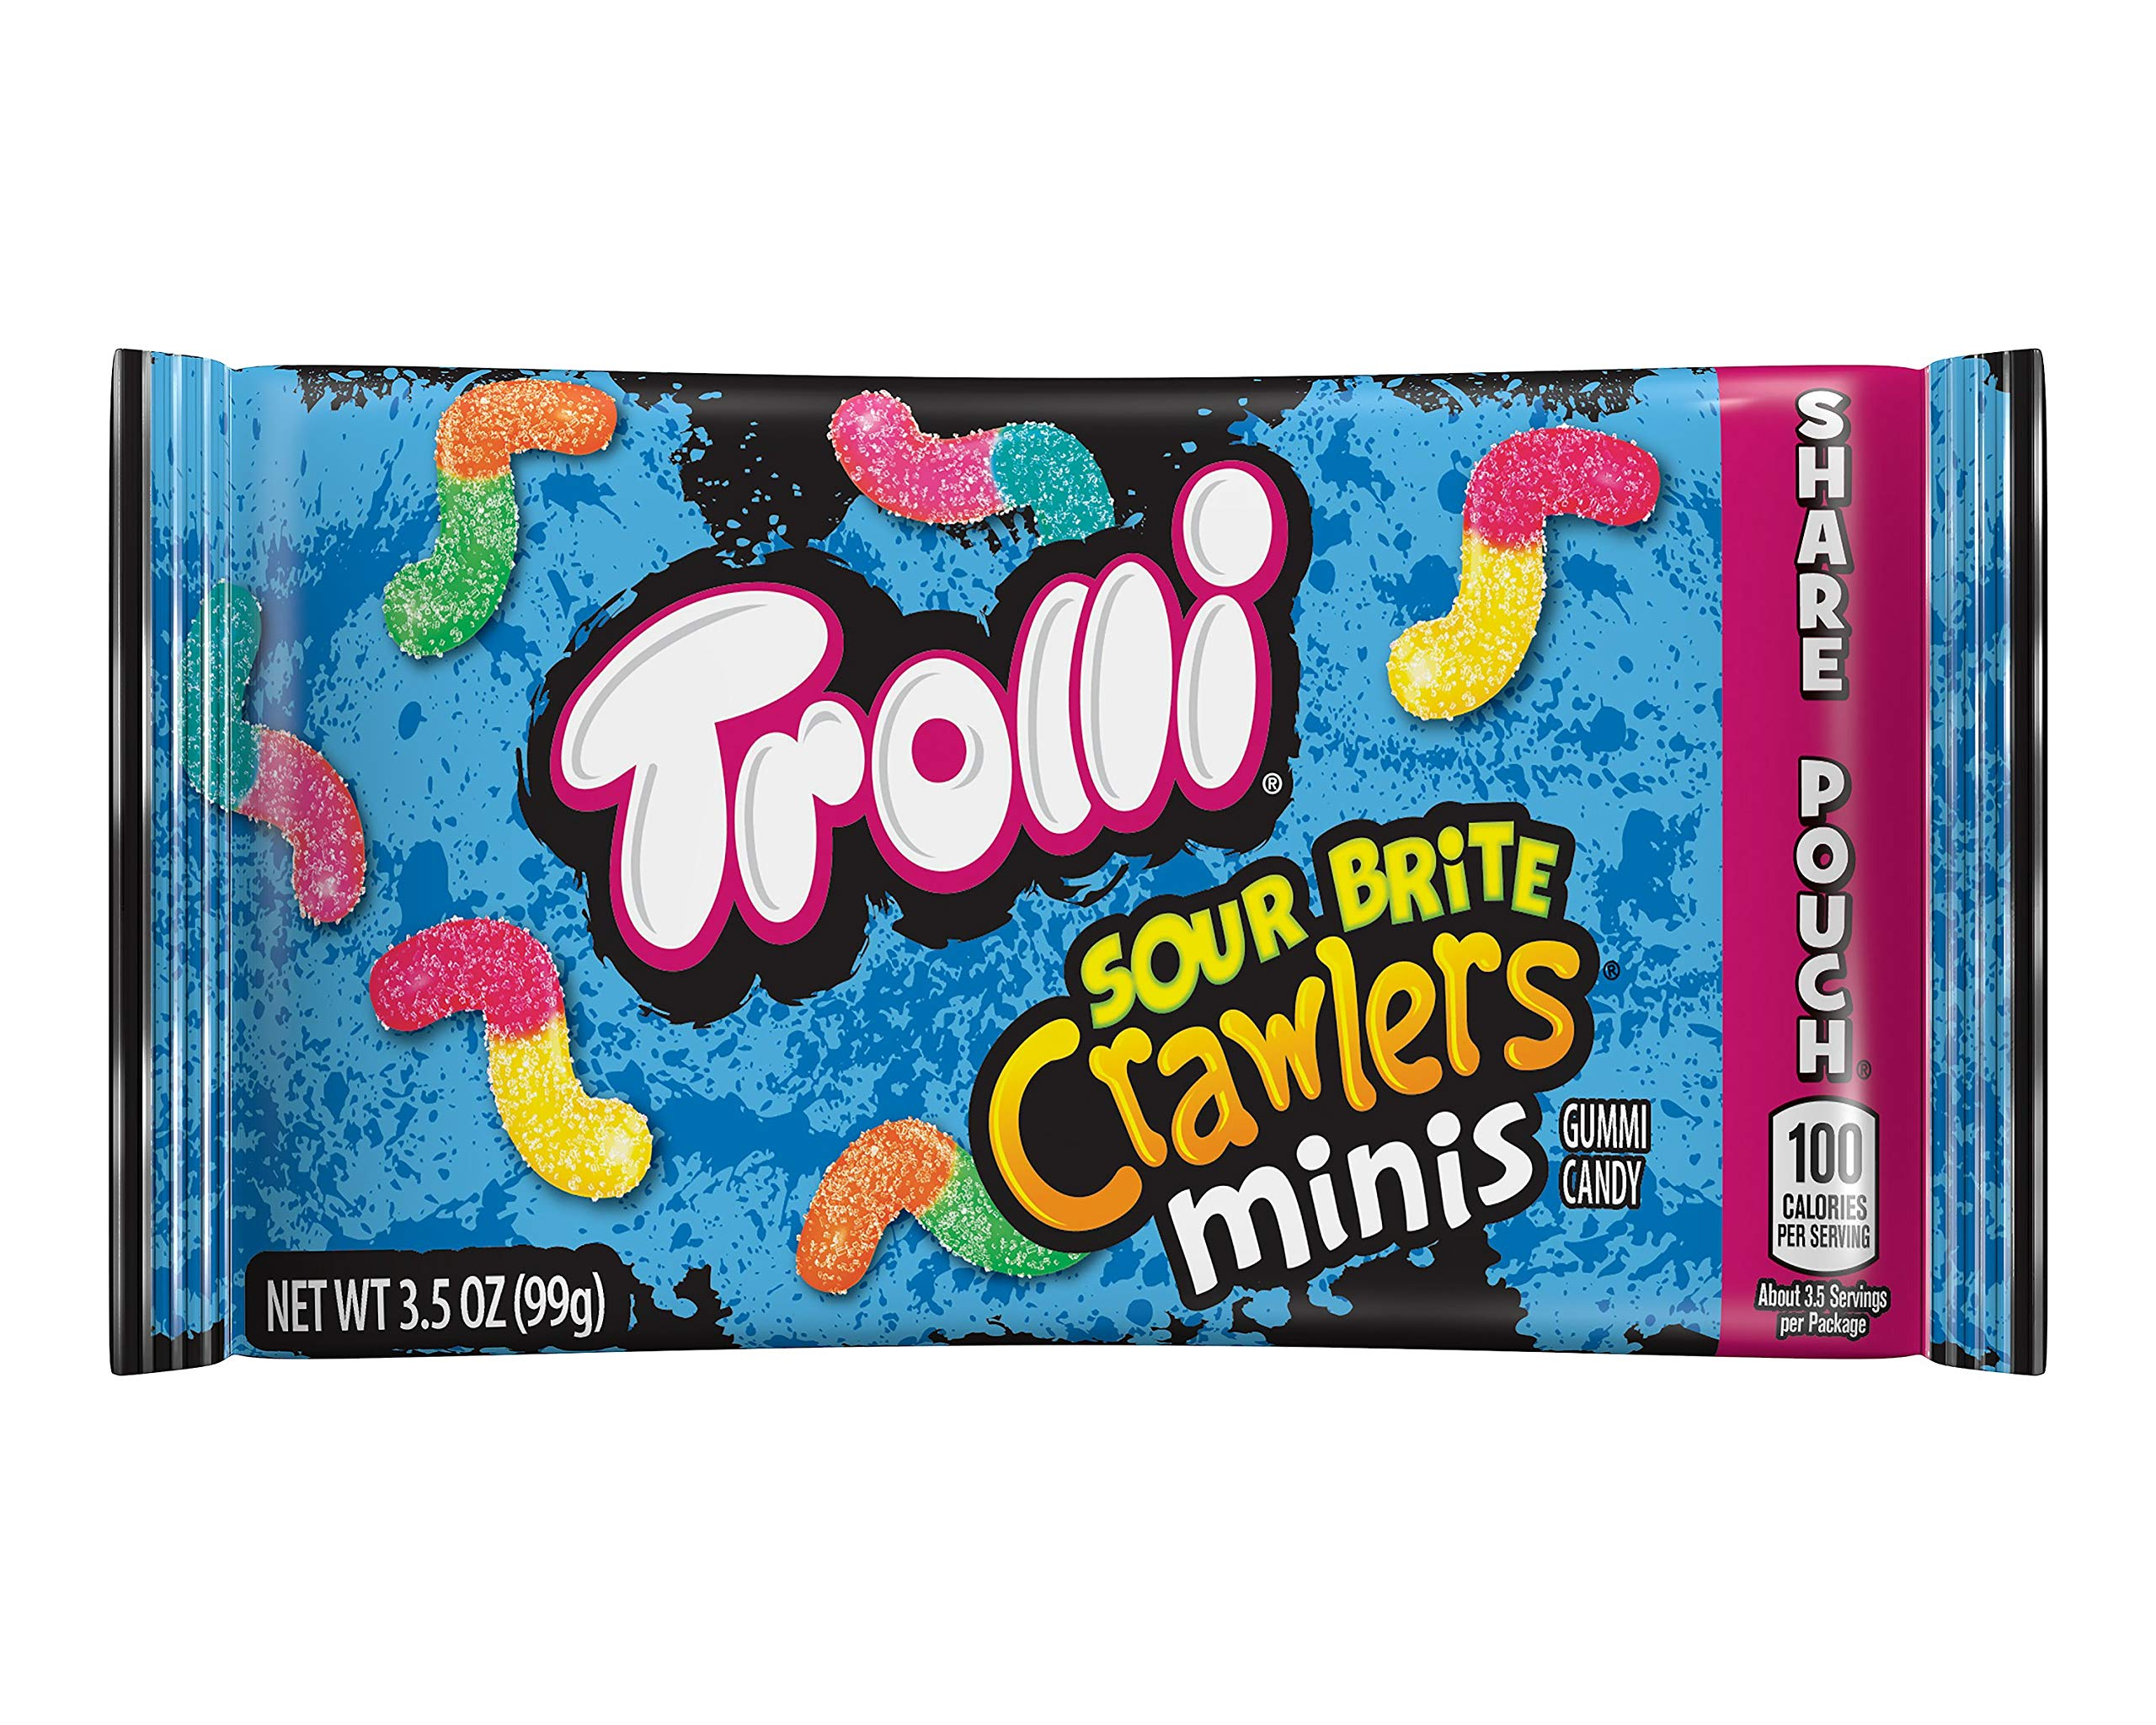 Trolli Mini Sour Brite Crawlers Gummy Worms, 3.5 Ounce Bag (Pack of 18) Sour Gummy Worms by Trolli